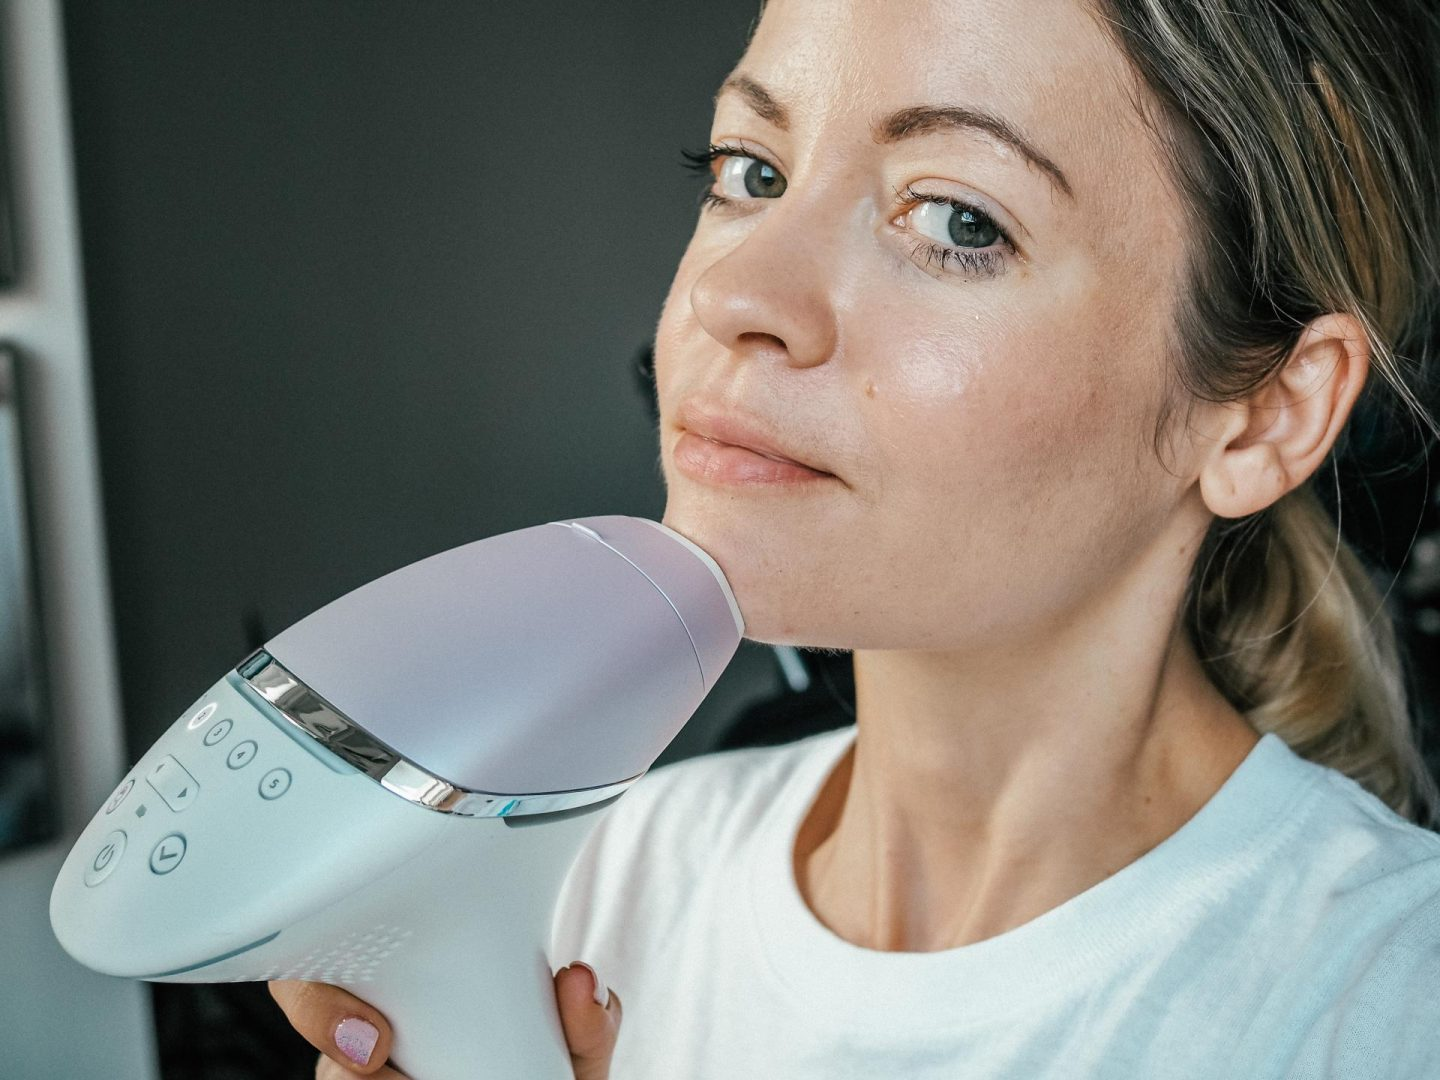 at-home IPL with the Philips Lumea Prestige